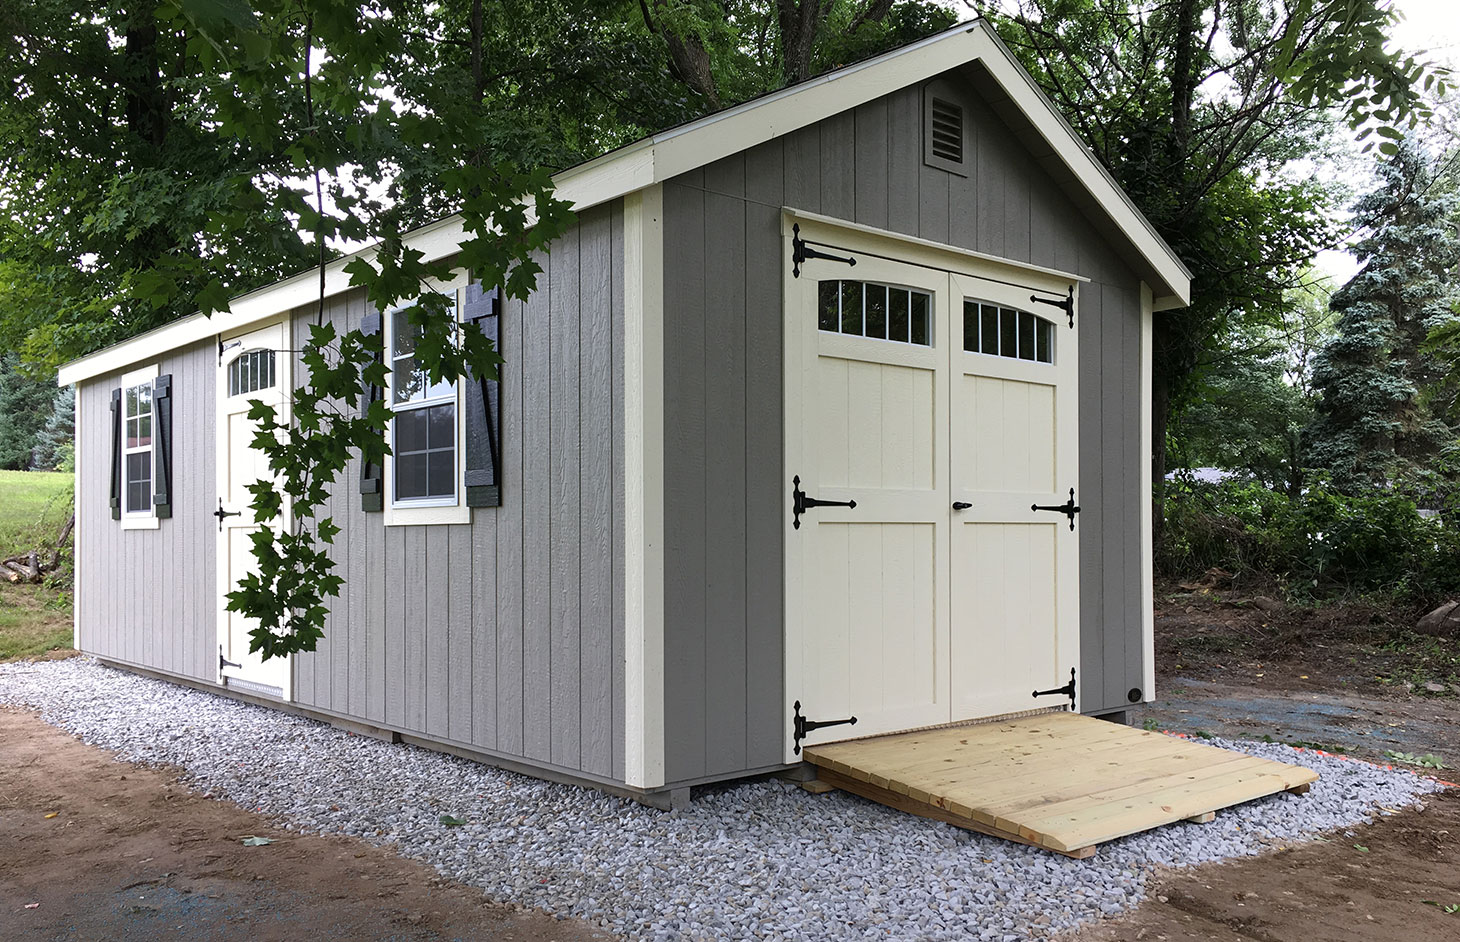 page delivery free shed imperial pool houses sale sheds ri cfm in ma house for ct